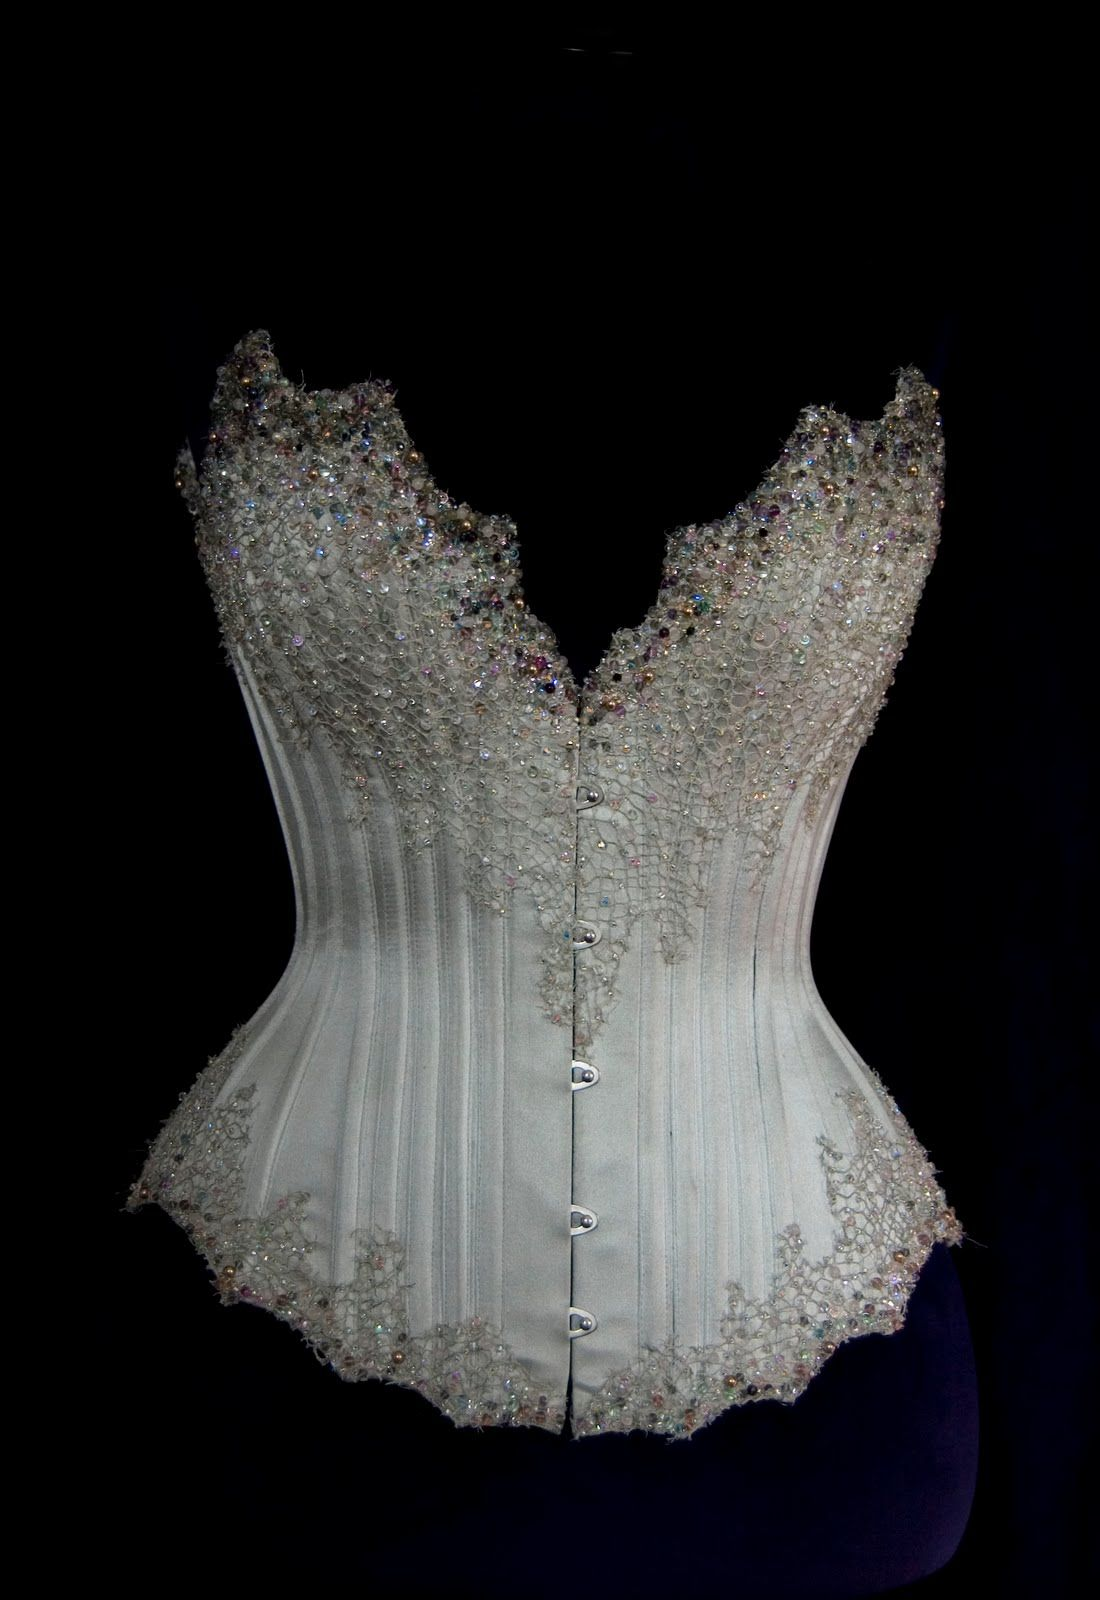 Couture Wedding Corsets And Gowns Wedding Corset Corset Fashion Corsets And Bustiers